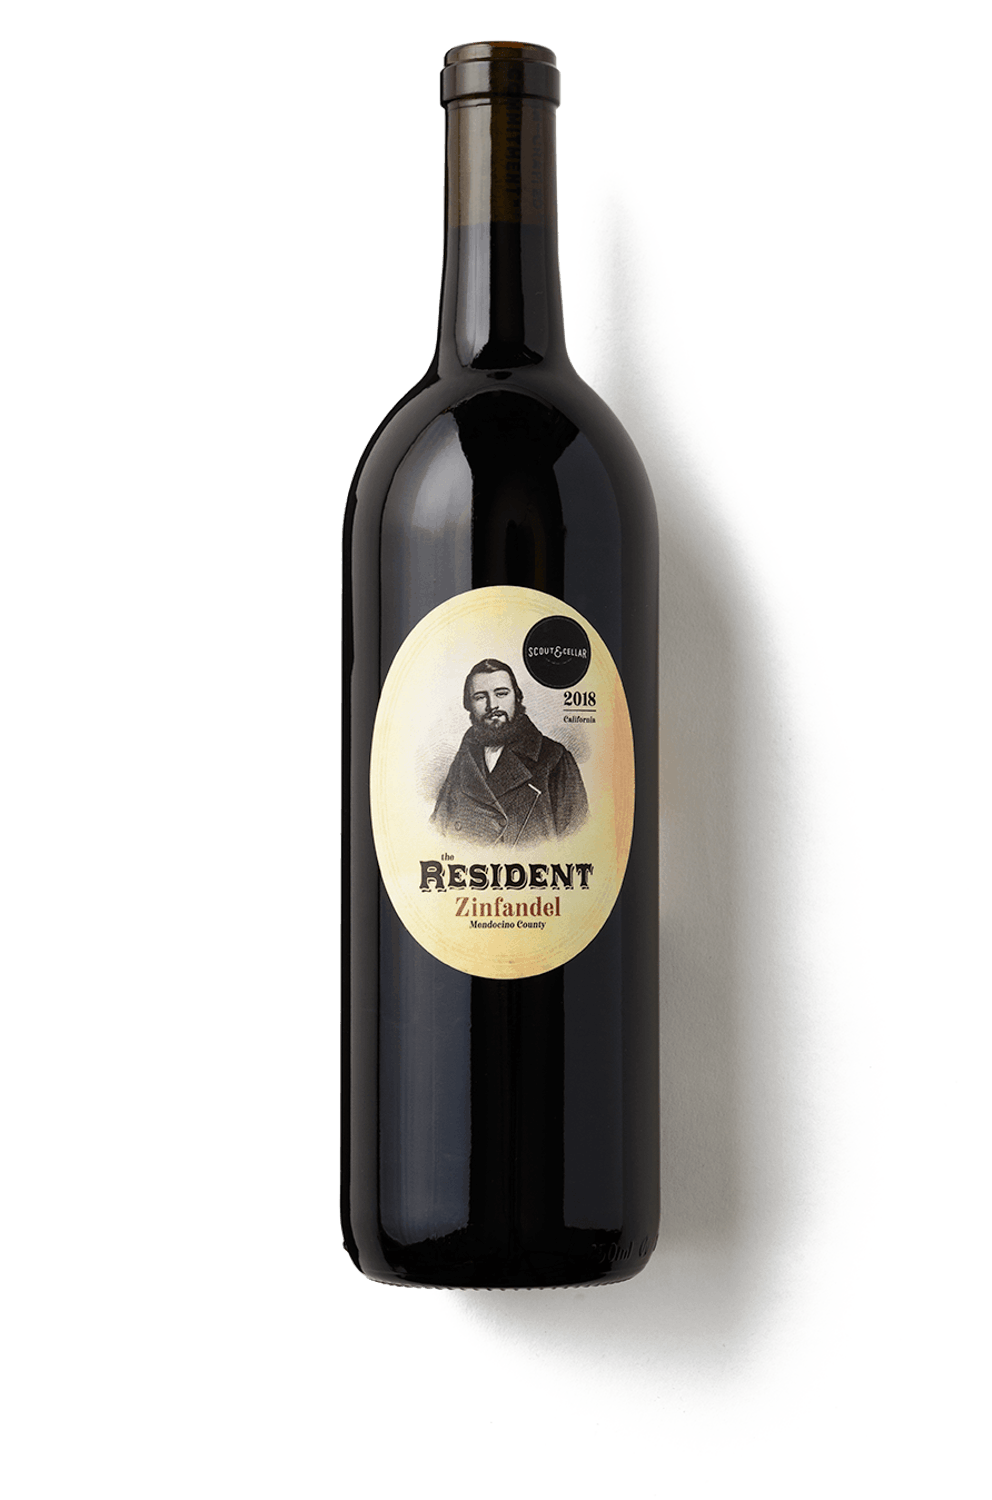 2018 THE RESIDENT ZINFANDEL